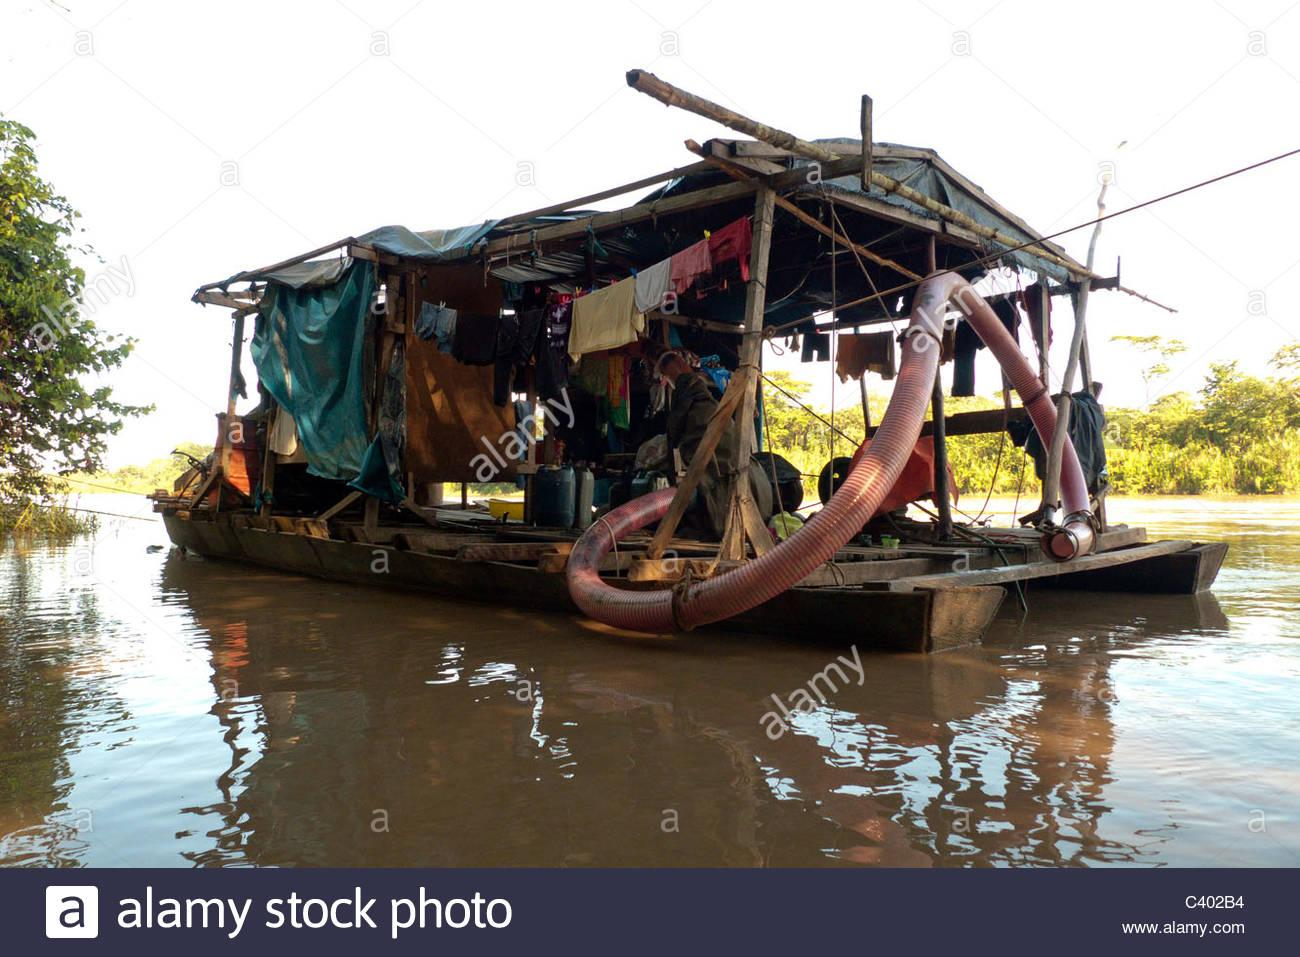 boat-used-for-illegal-small-scale-gold-mining-on-the-tambopata-river-C402B4.jpg